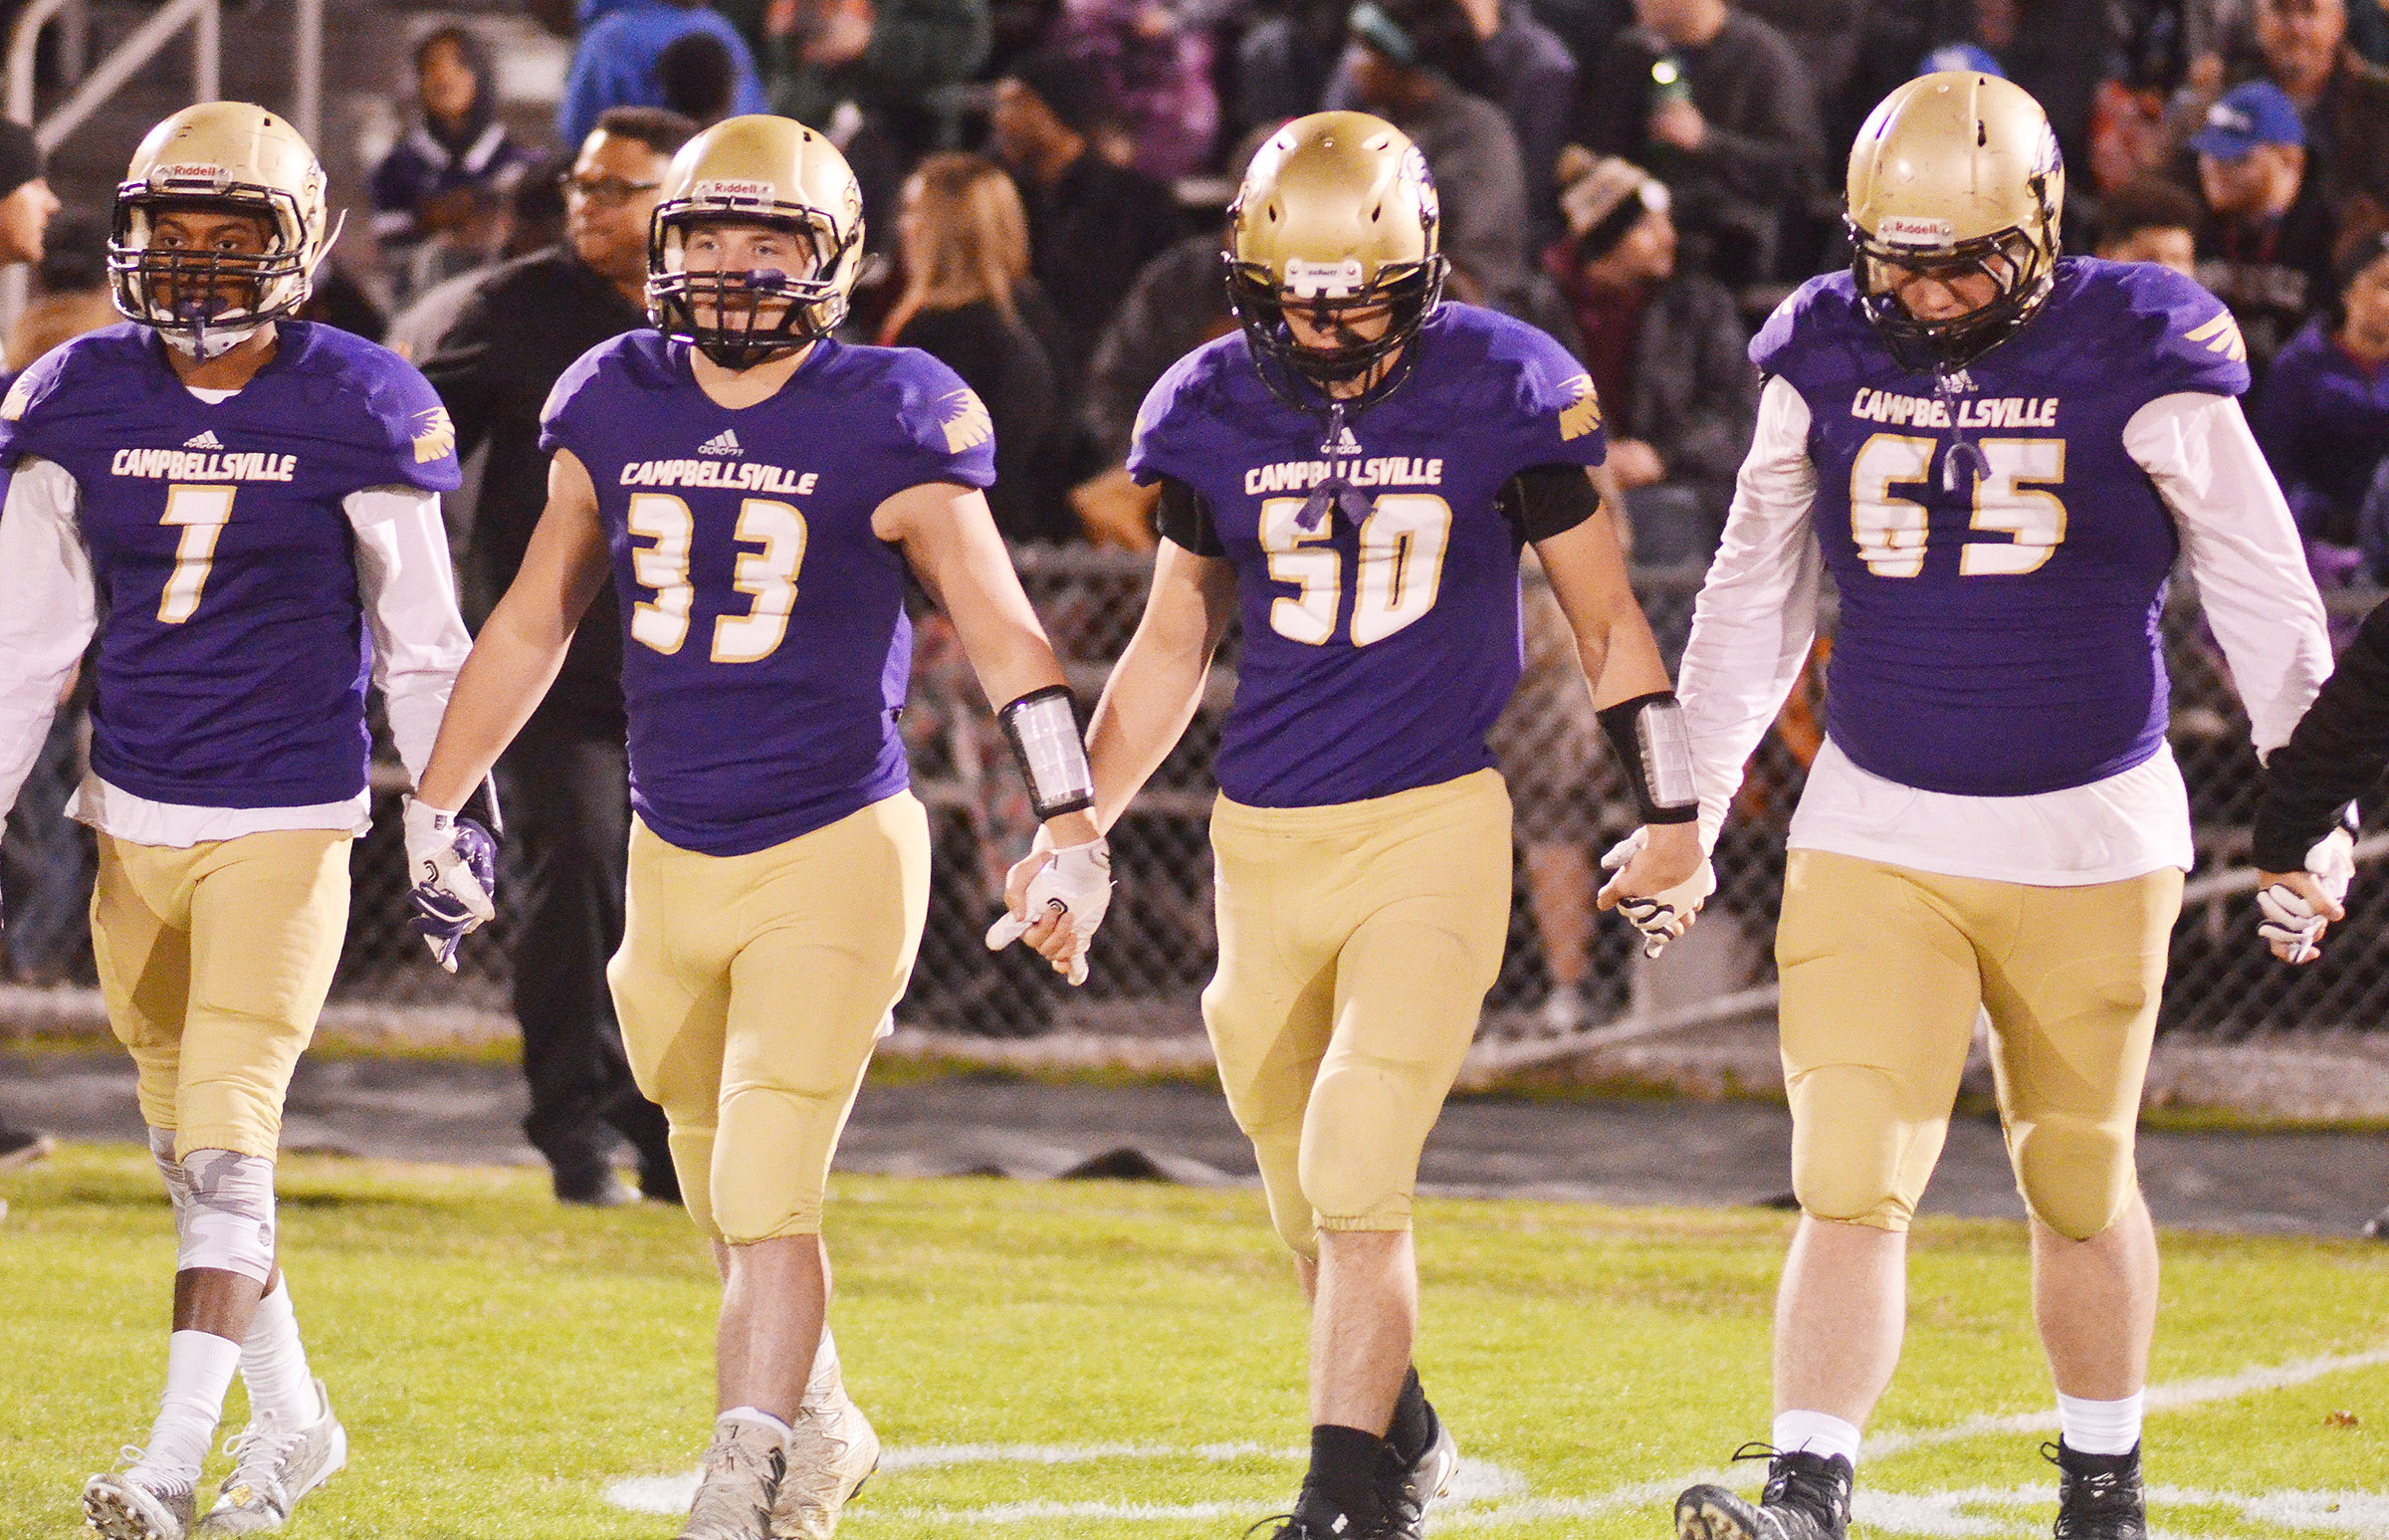 From left, CHS senior Devonte Cubit and juniors Dakota Reardon, Tristan Johnson and Lane Bottoms walk to the coin toss.